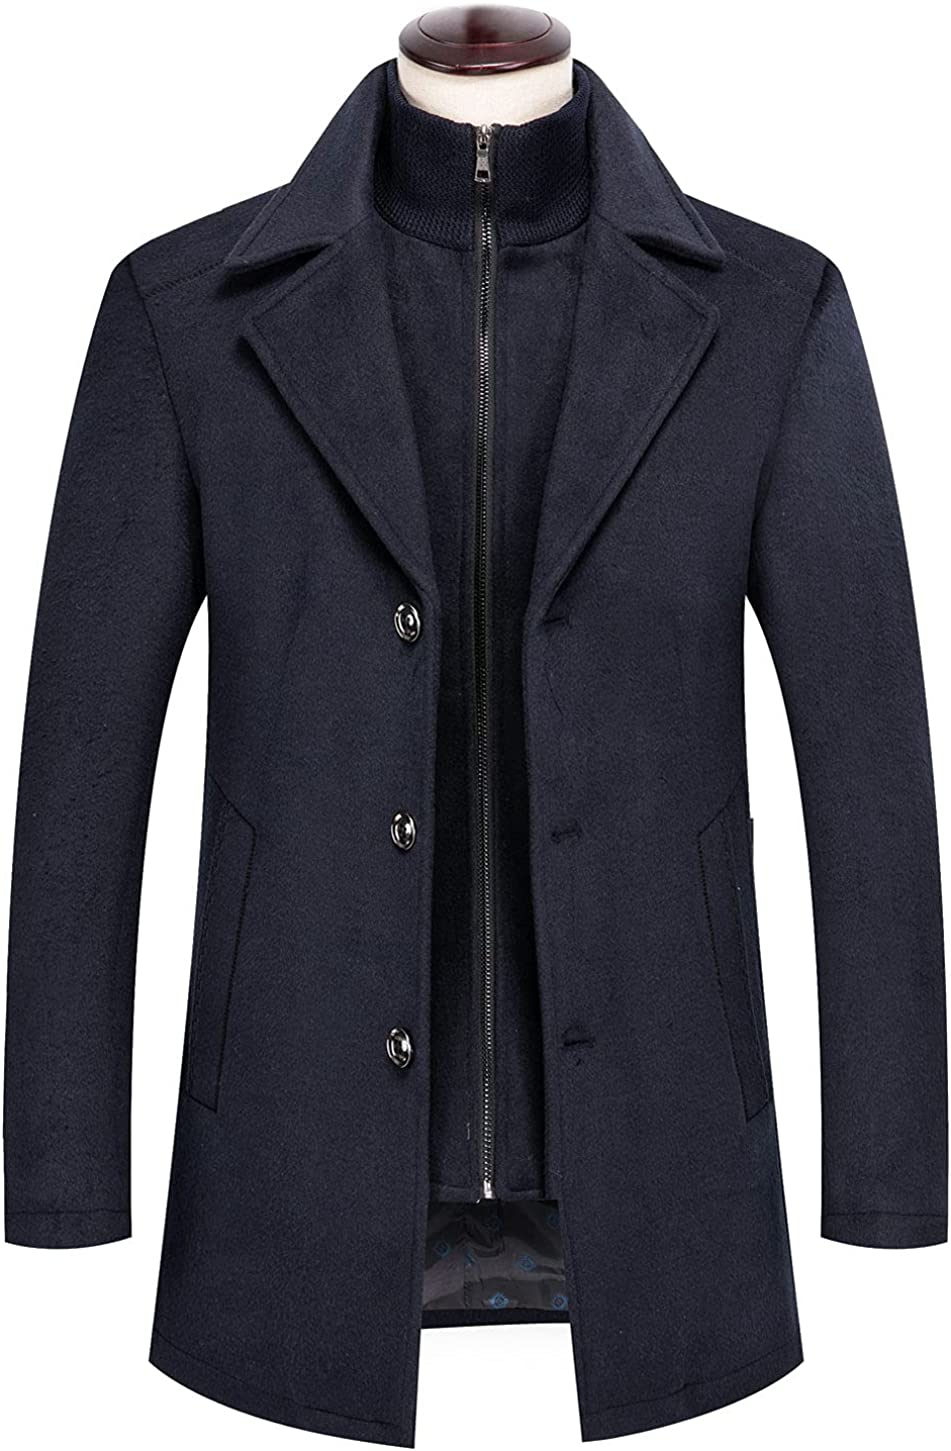 CHARTOU Men's 2Pcs Quilted Notched Collar Single Breasted Wool Pea Coat with Detachable Zip Gilet